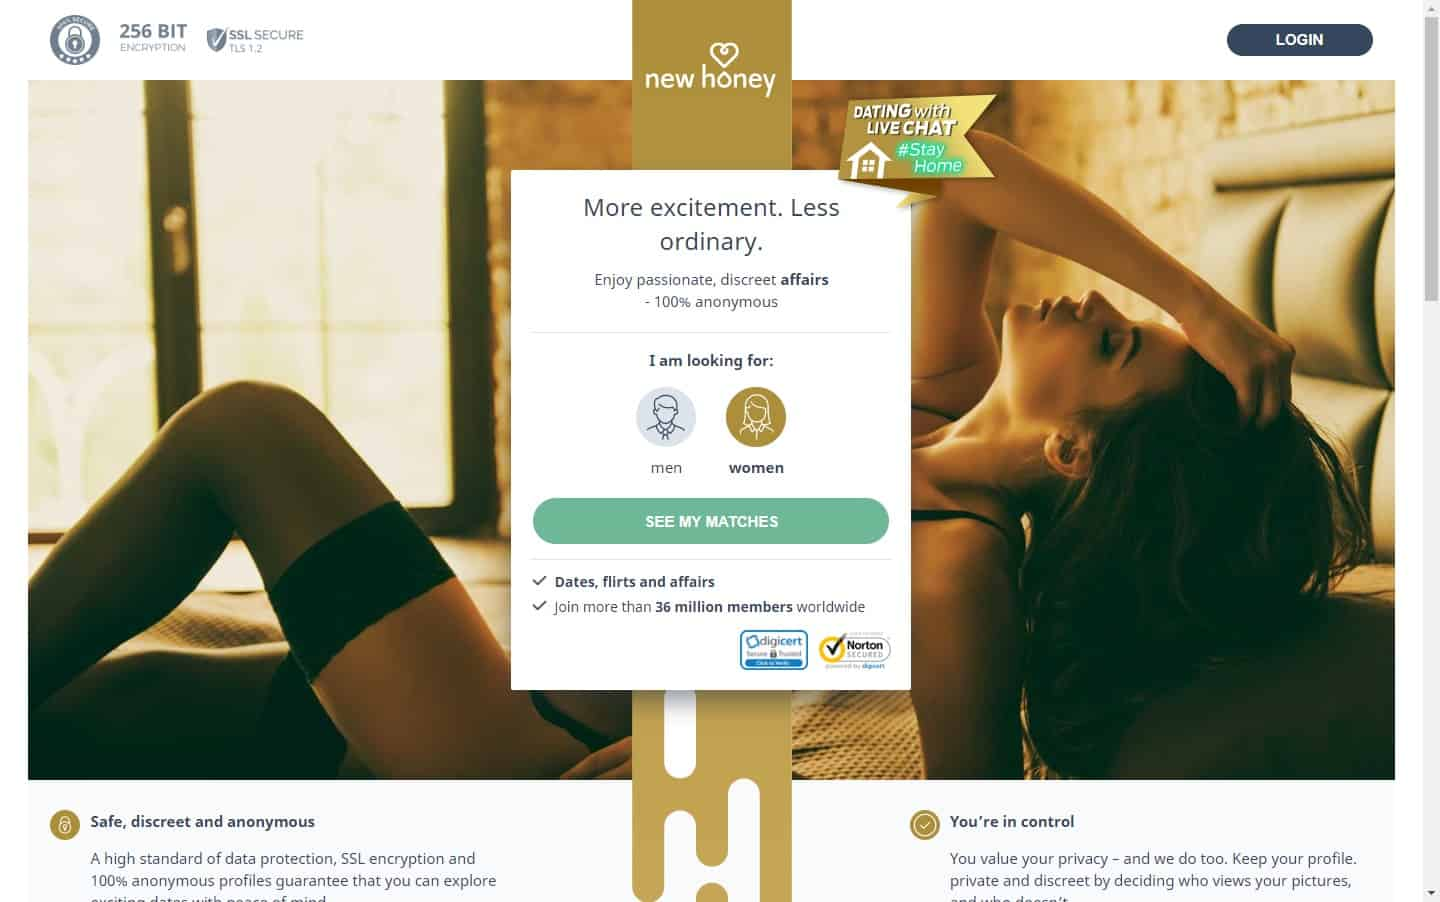 Test winner: New Honey - Casual Dating